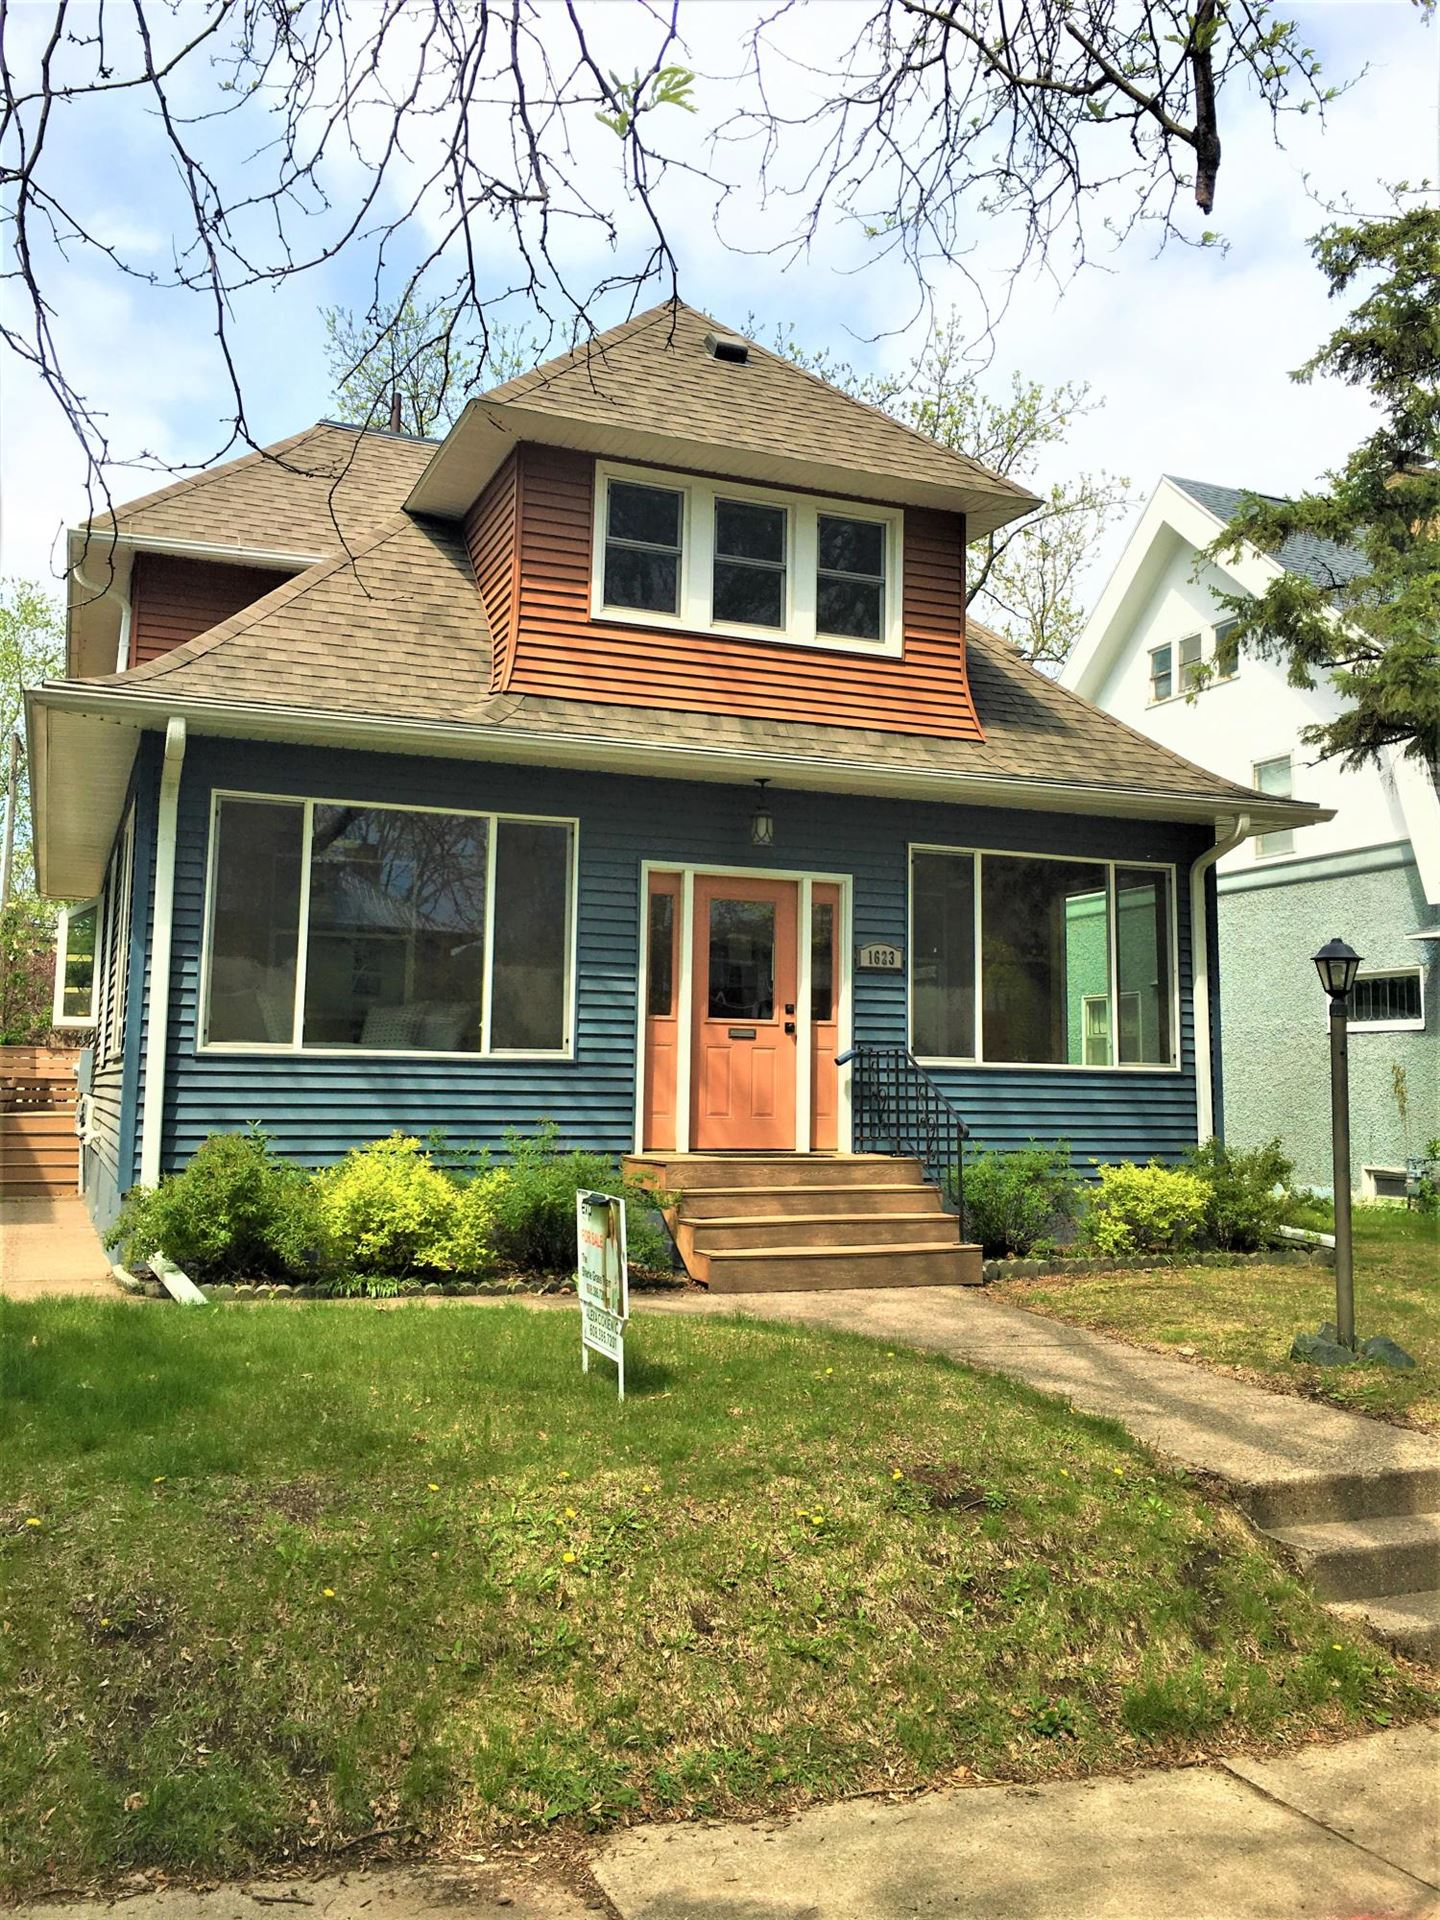 1623 Main St, La Crosse, WI 54601 - MLS#: 1734712